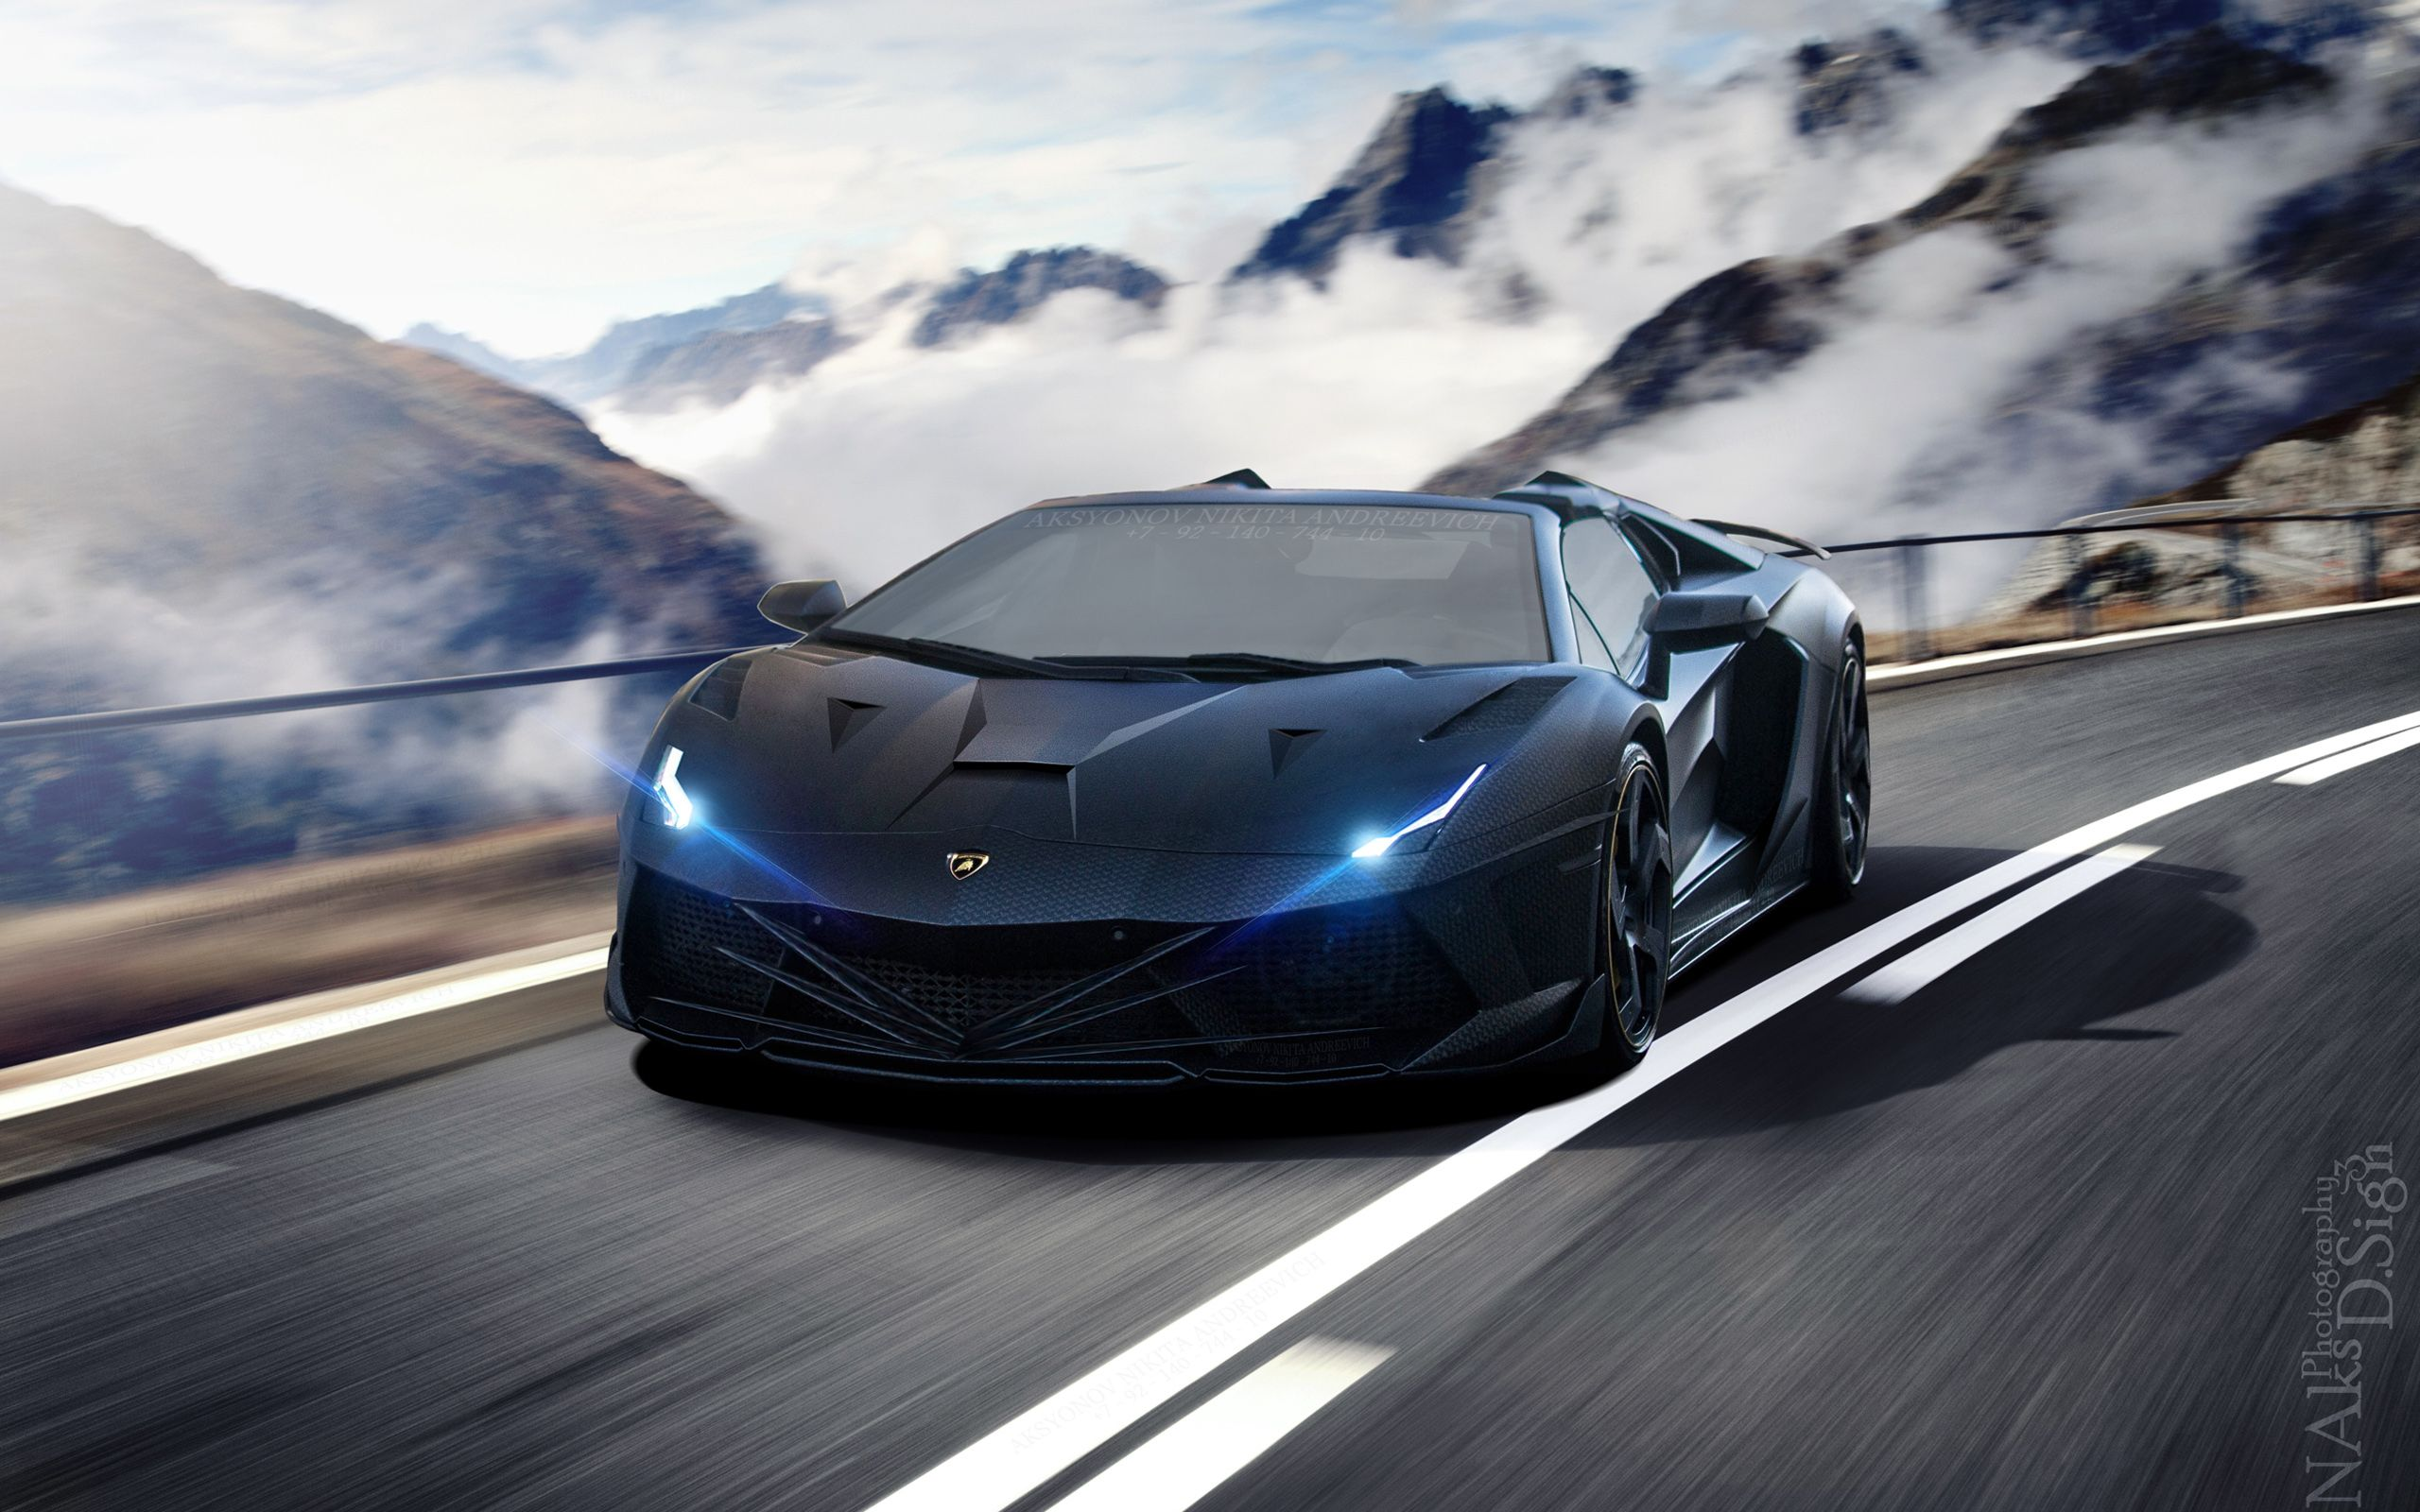 Lamborghini Car Hd Wallpapers Top Free Lamborghini Car Hd